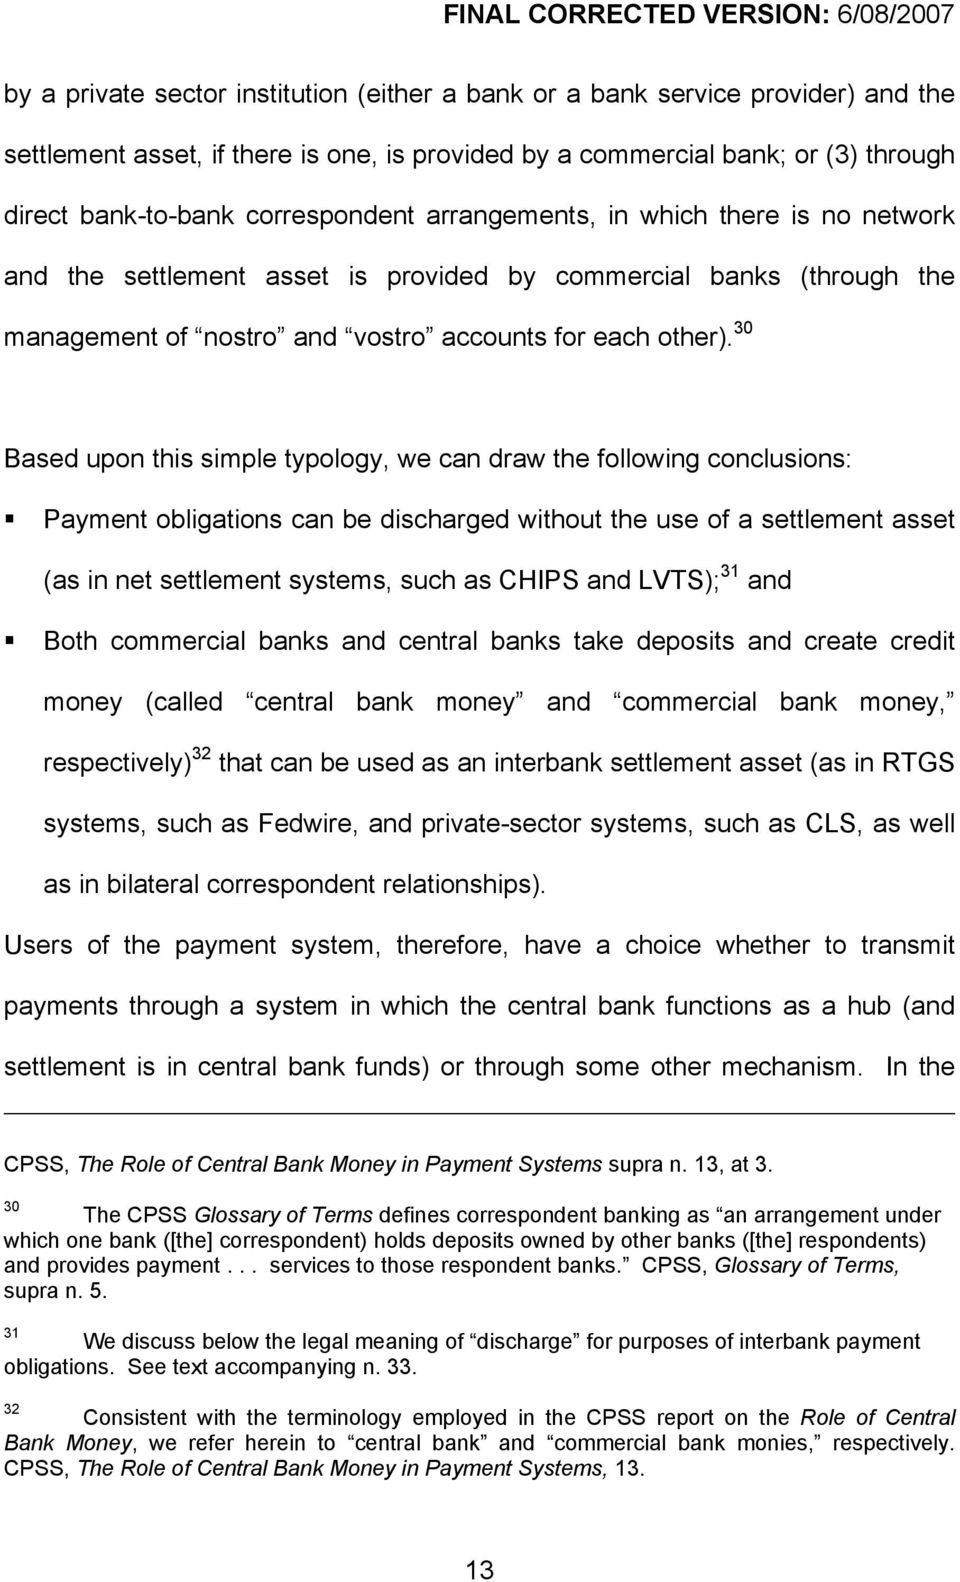 30 Based upon this simple typology, we can draw the following conclusions: Payment obligations can be discharged without the use of a settlement asset (as in net settlement systems, such as CHIPS and